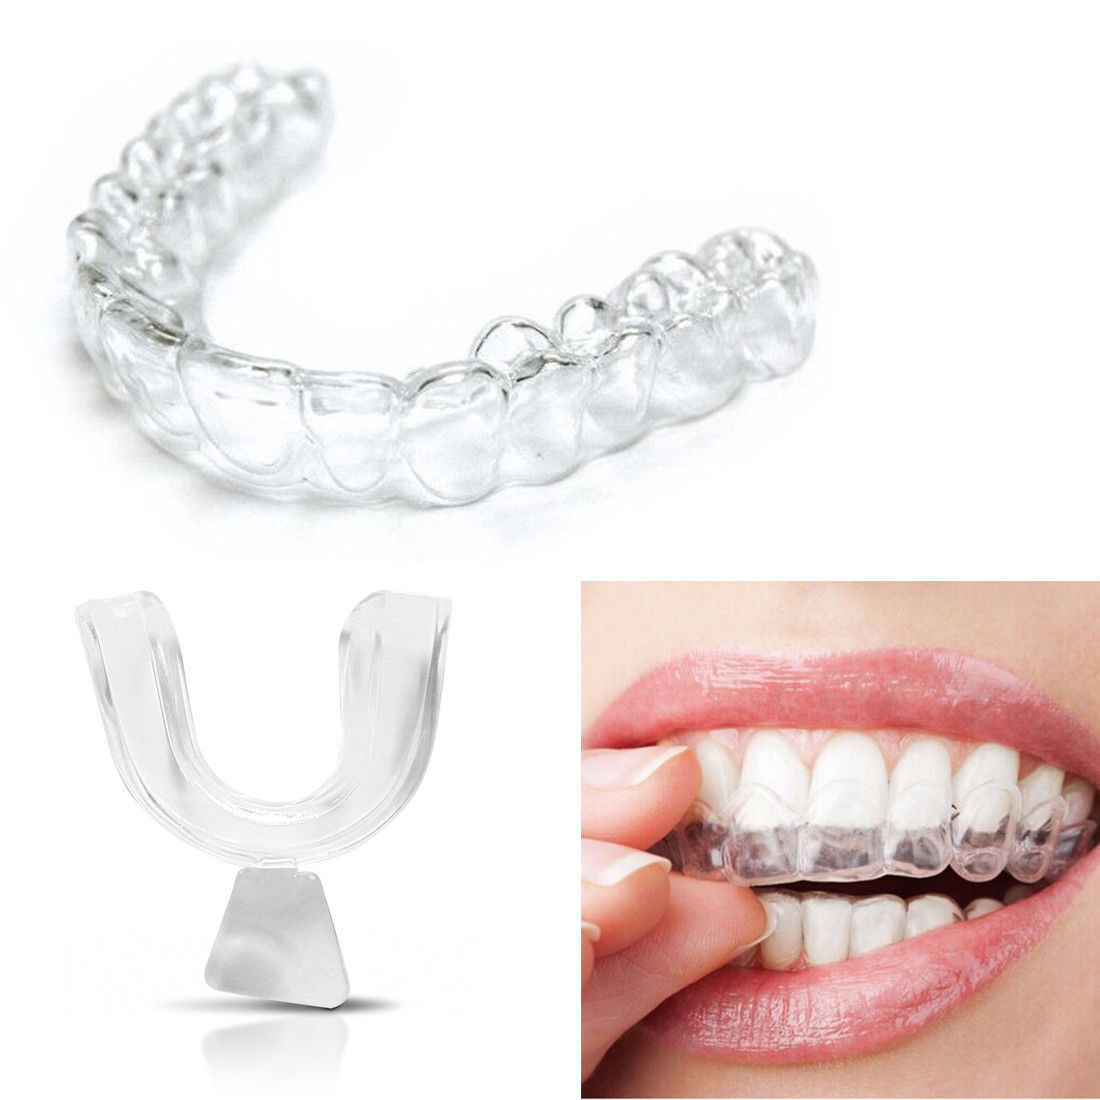 4 x Silicone Night Mouth Guard Teeth Clenching Grinding Dent